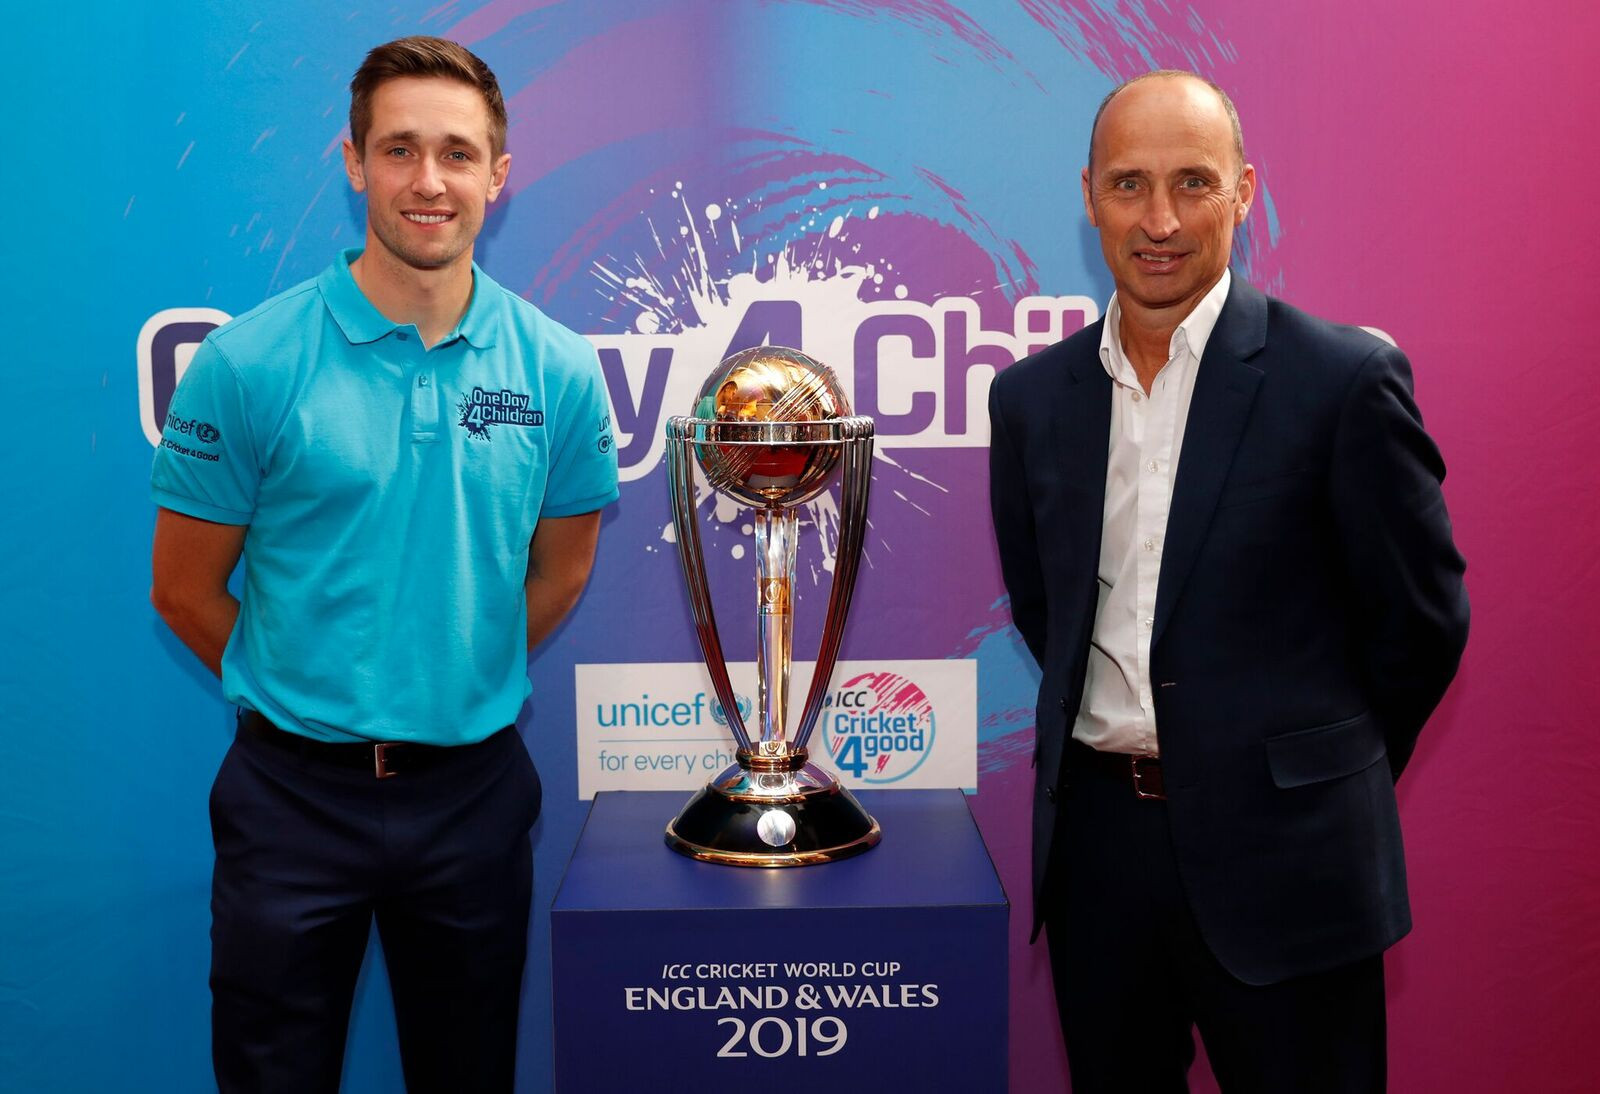 England all-rounder Chris Woakes, left, and former England captain Nasser Hussain, now ambassador for #OneDay4Children, help launch the funding initative in partnership with UNICEF that will run throughout the 2019 ICC Men's Cricket World Cup that will run in England and Wales from May 30 to July 14 ©ICC